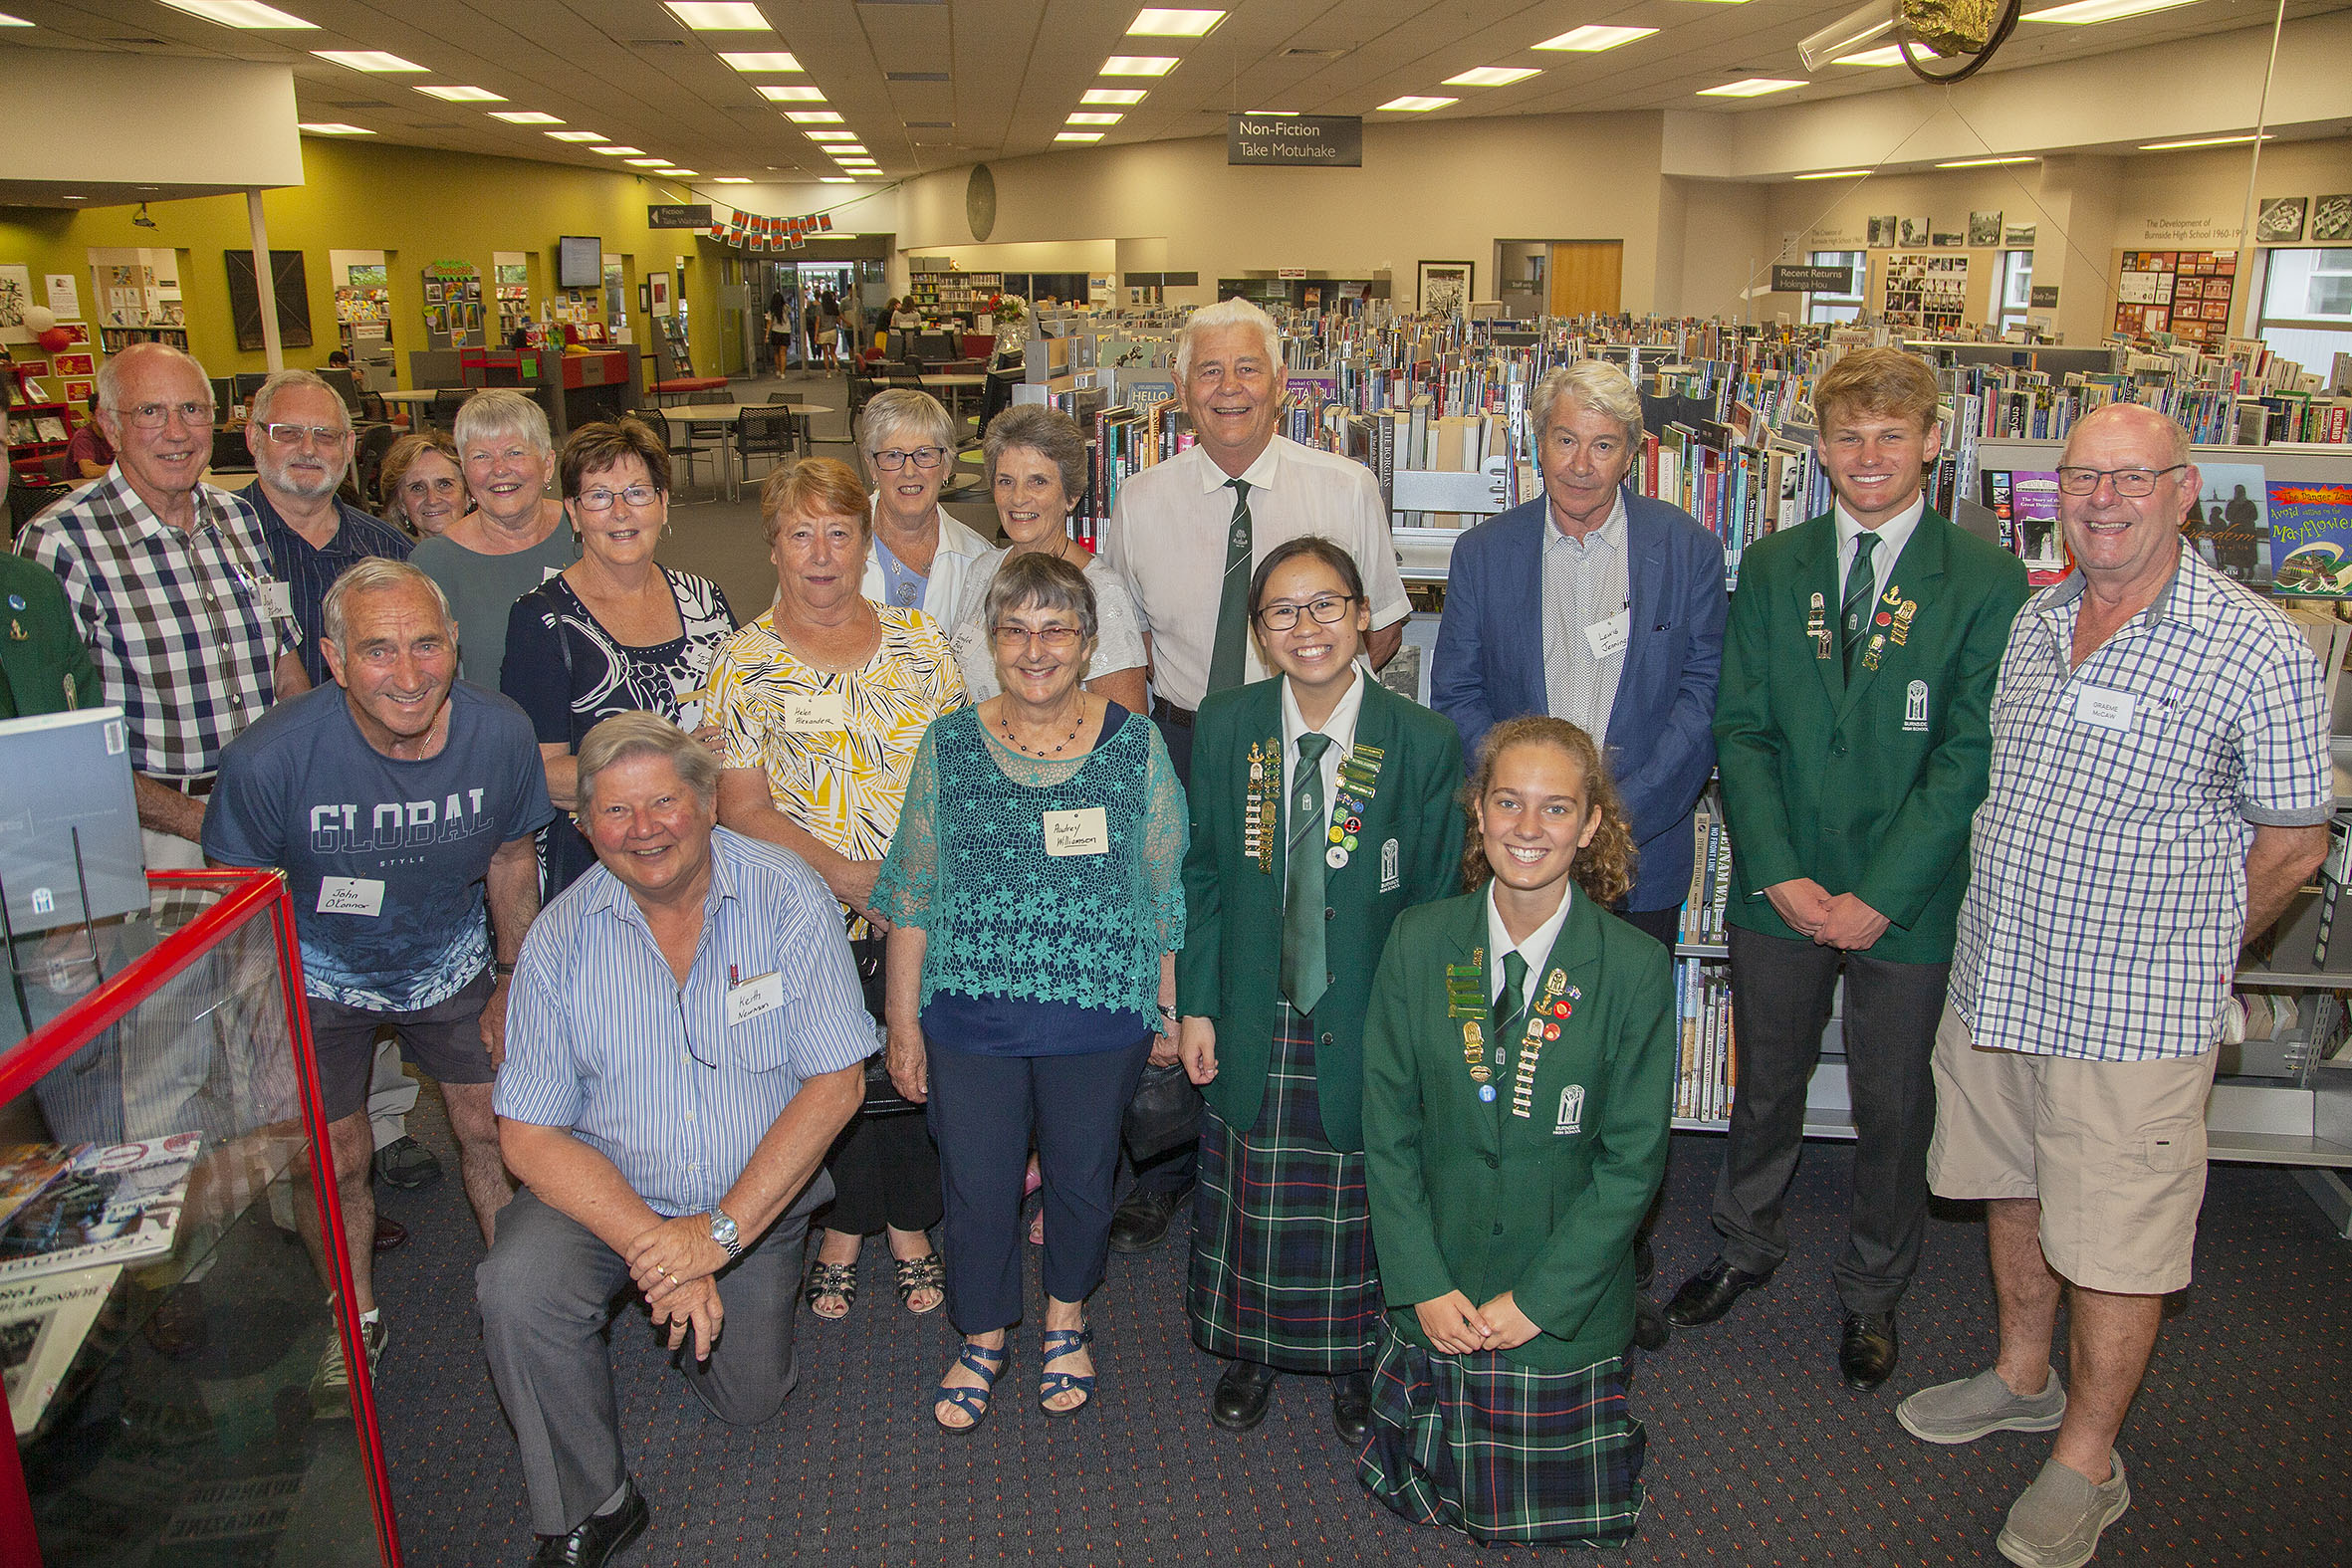 Former and current students celebrated the school's significant milestone. Photo: Geoff Sloan